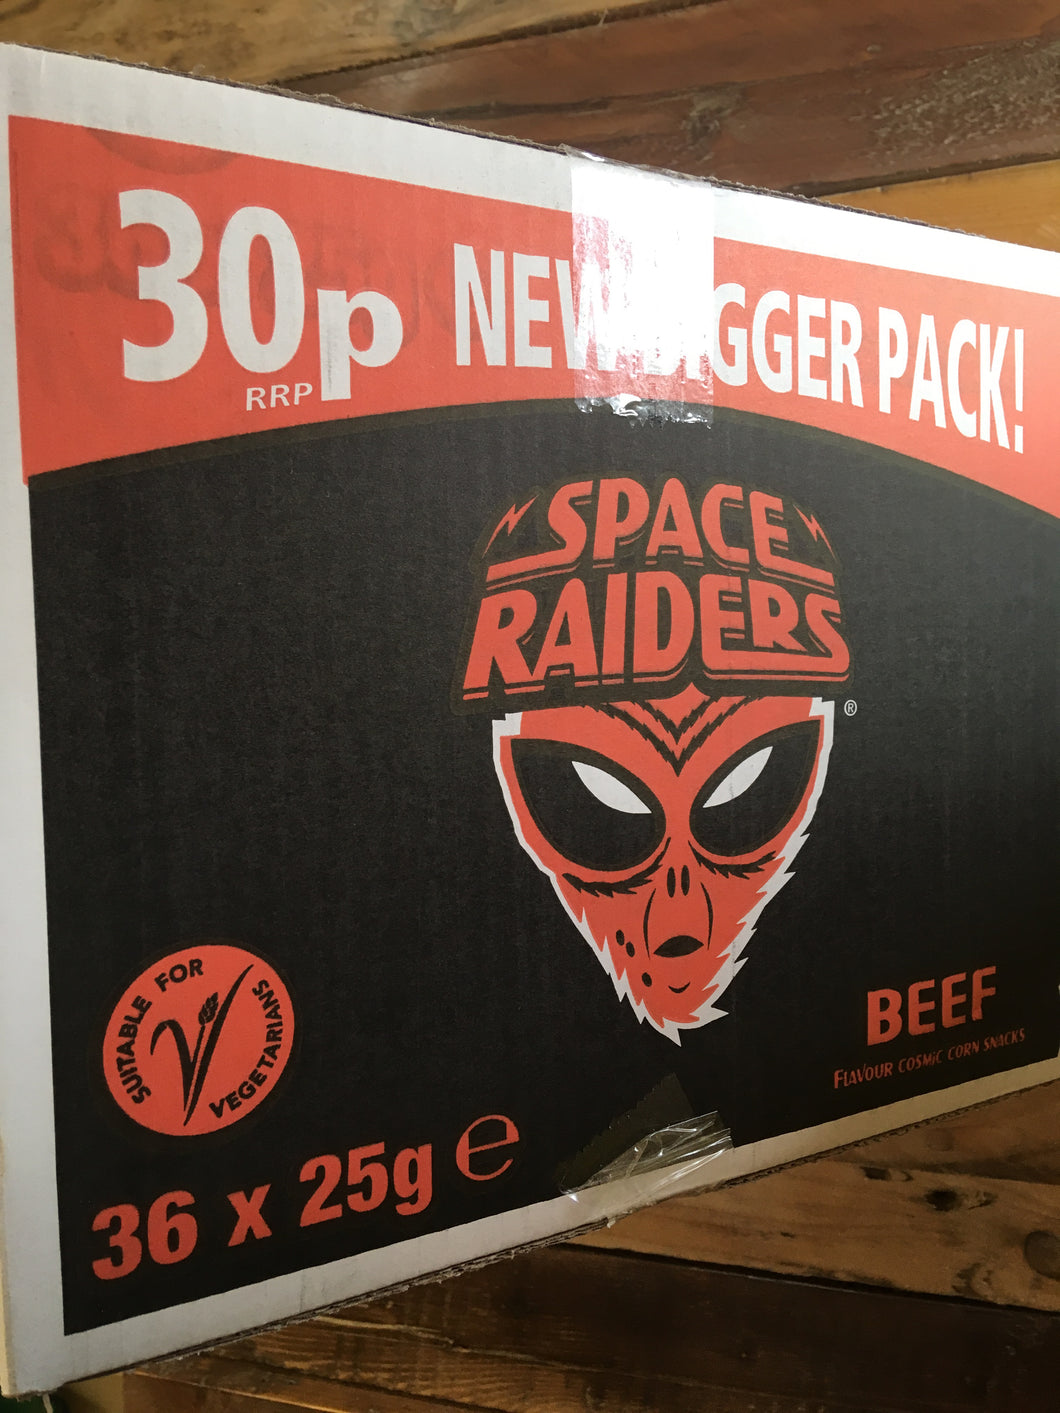 36x Space Raiders Beef Corn Snacks (36x25g)